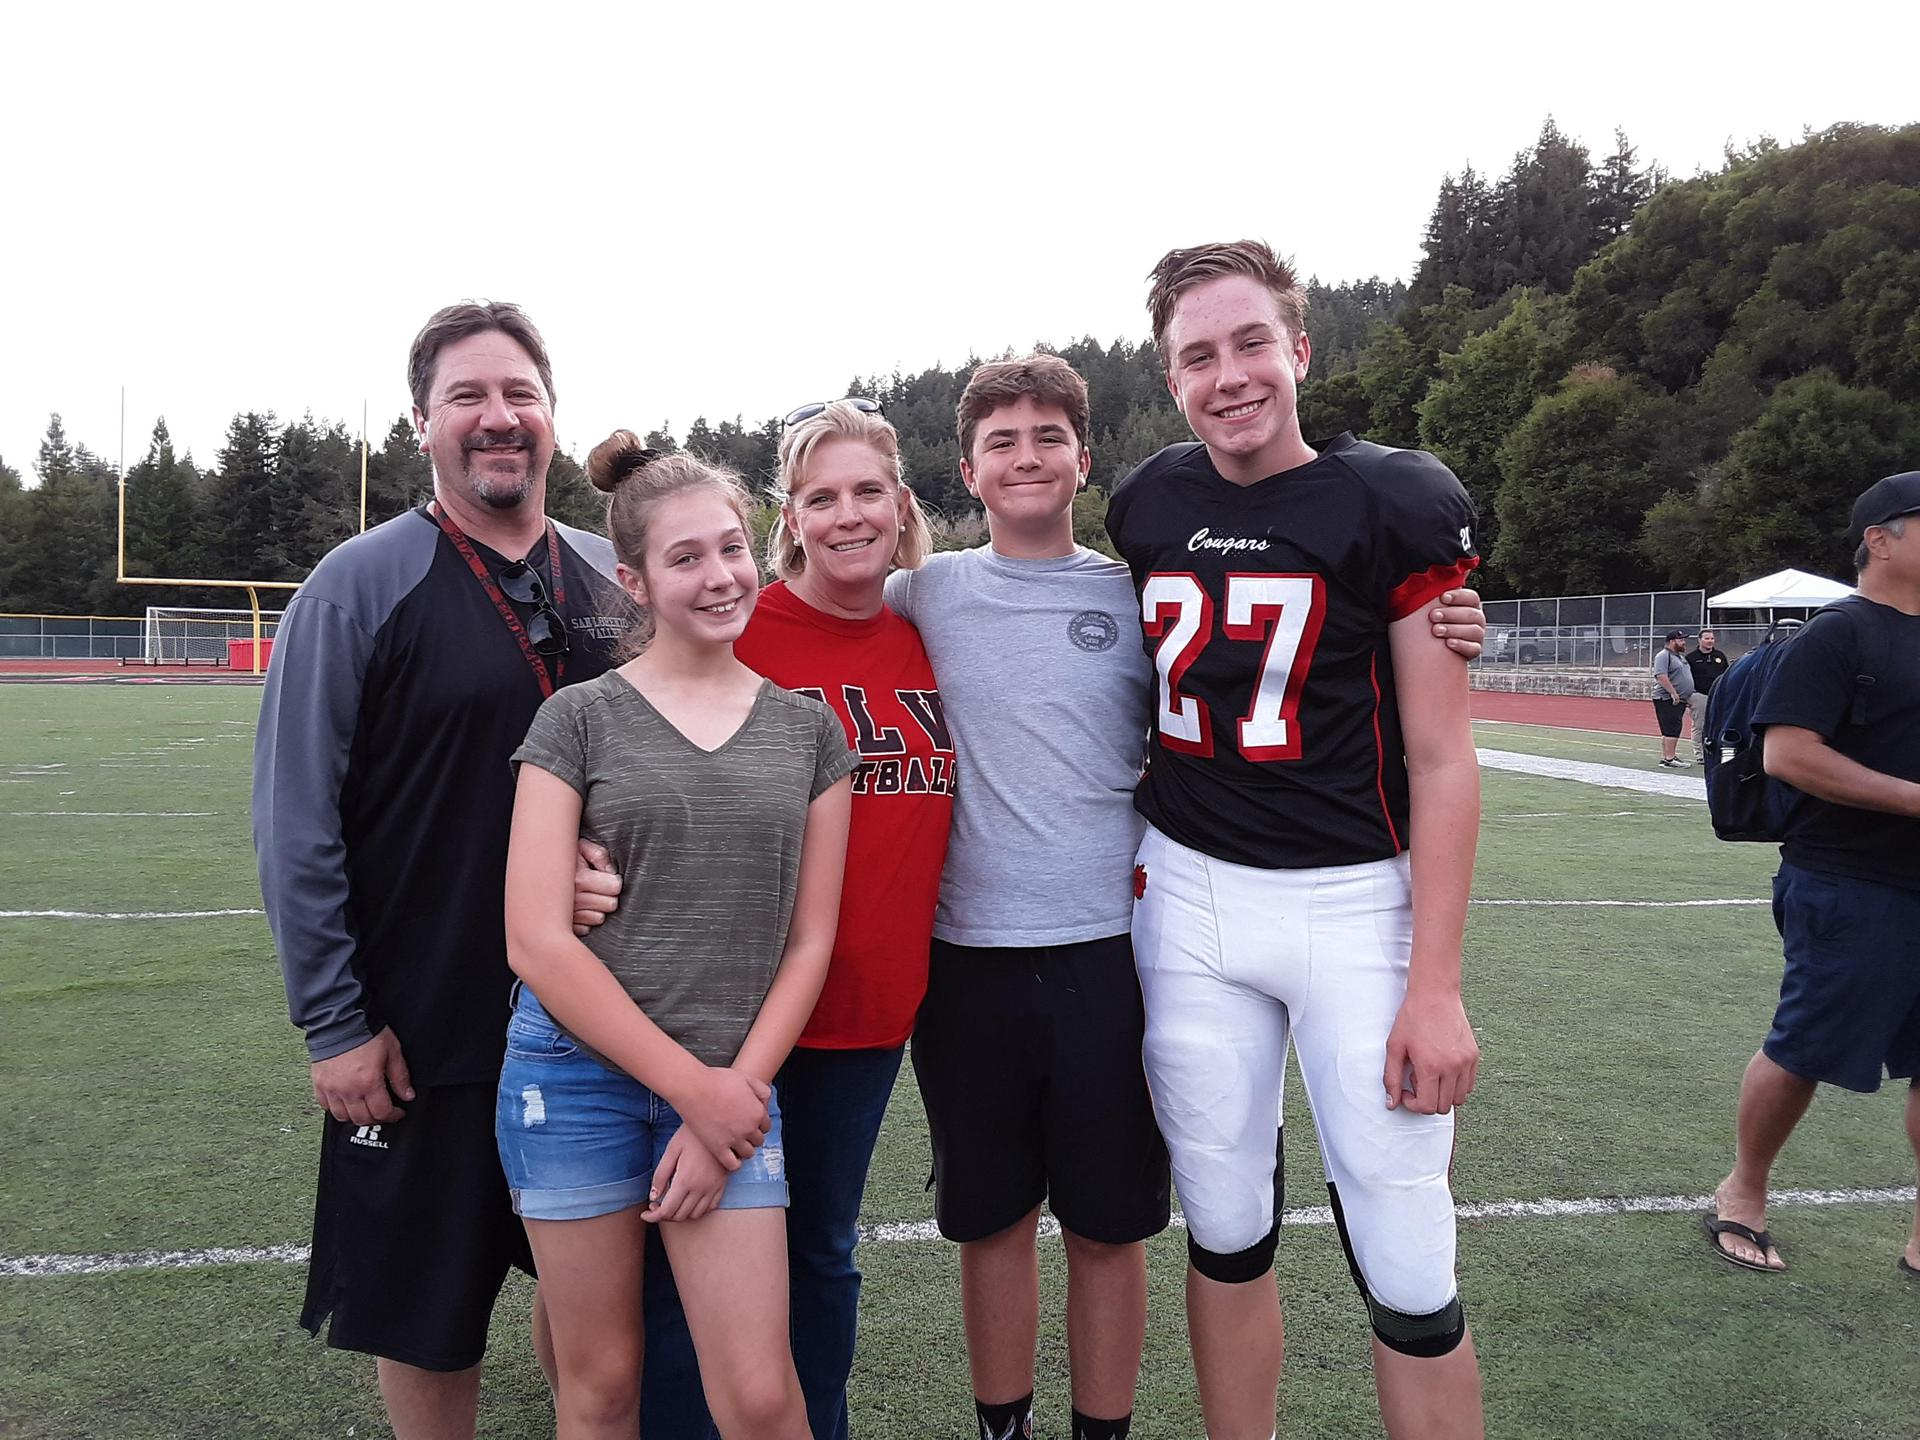 My family and I...Jeff, Mary, Ben and Jack